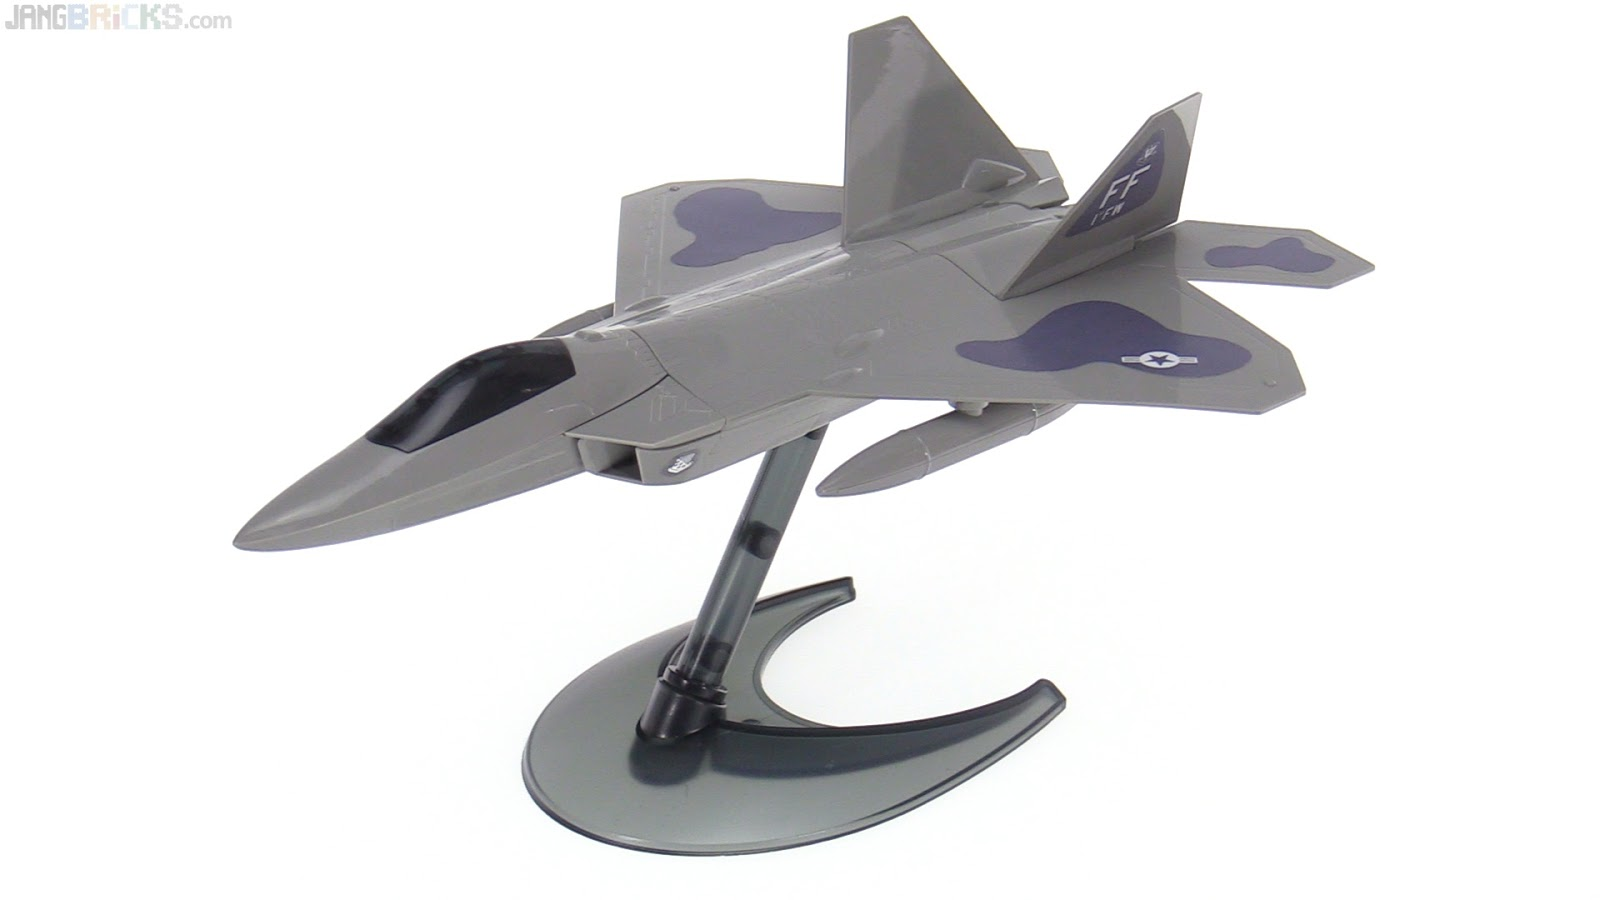 Airfix Quick Build F 22 Raptor model review